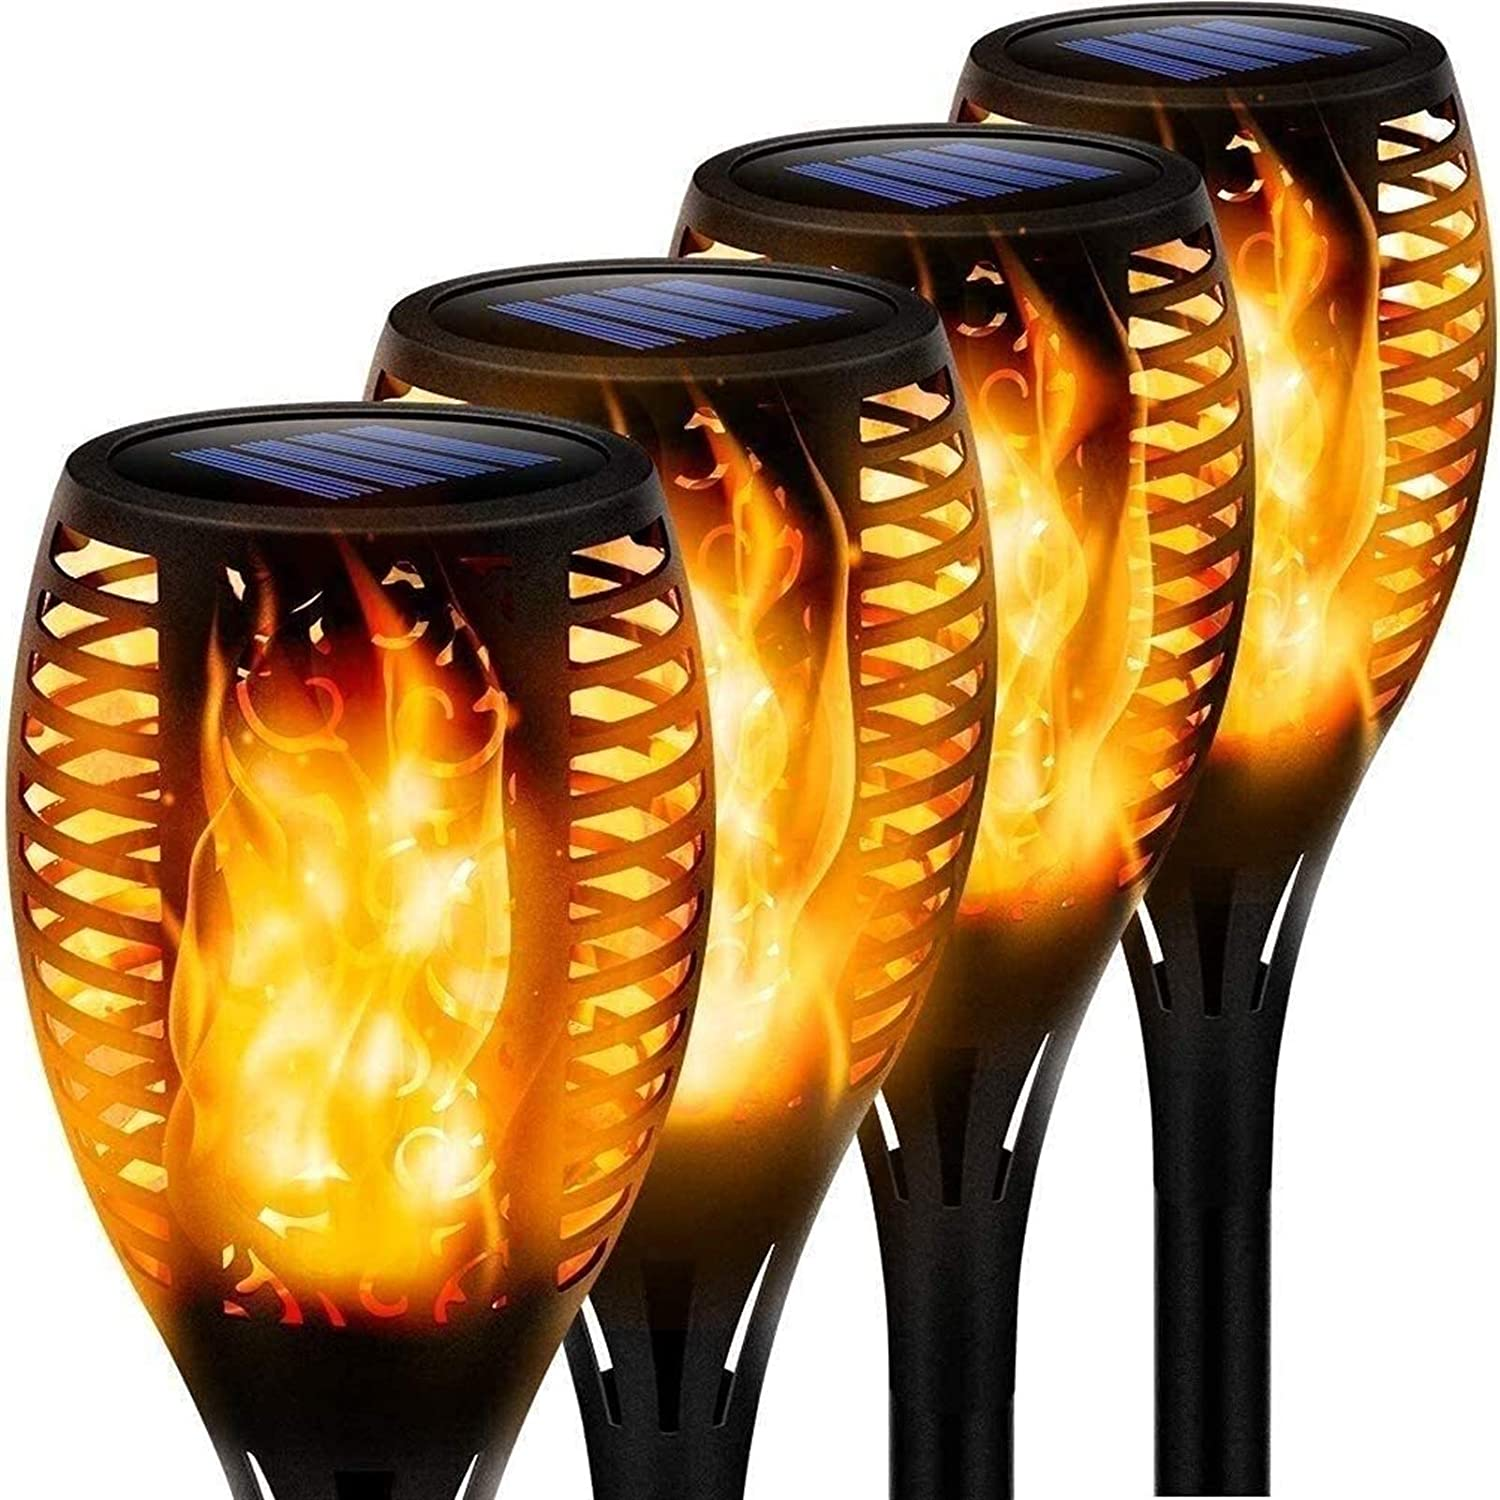 SKYWPOJU 2021 new Solar Light Garden mart Torches with Torch IP6 LED 12